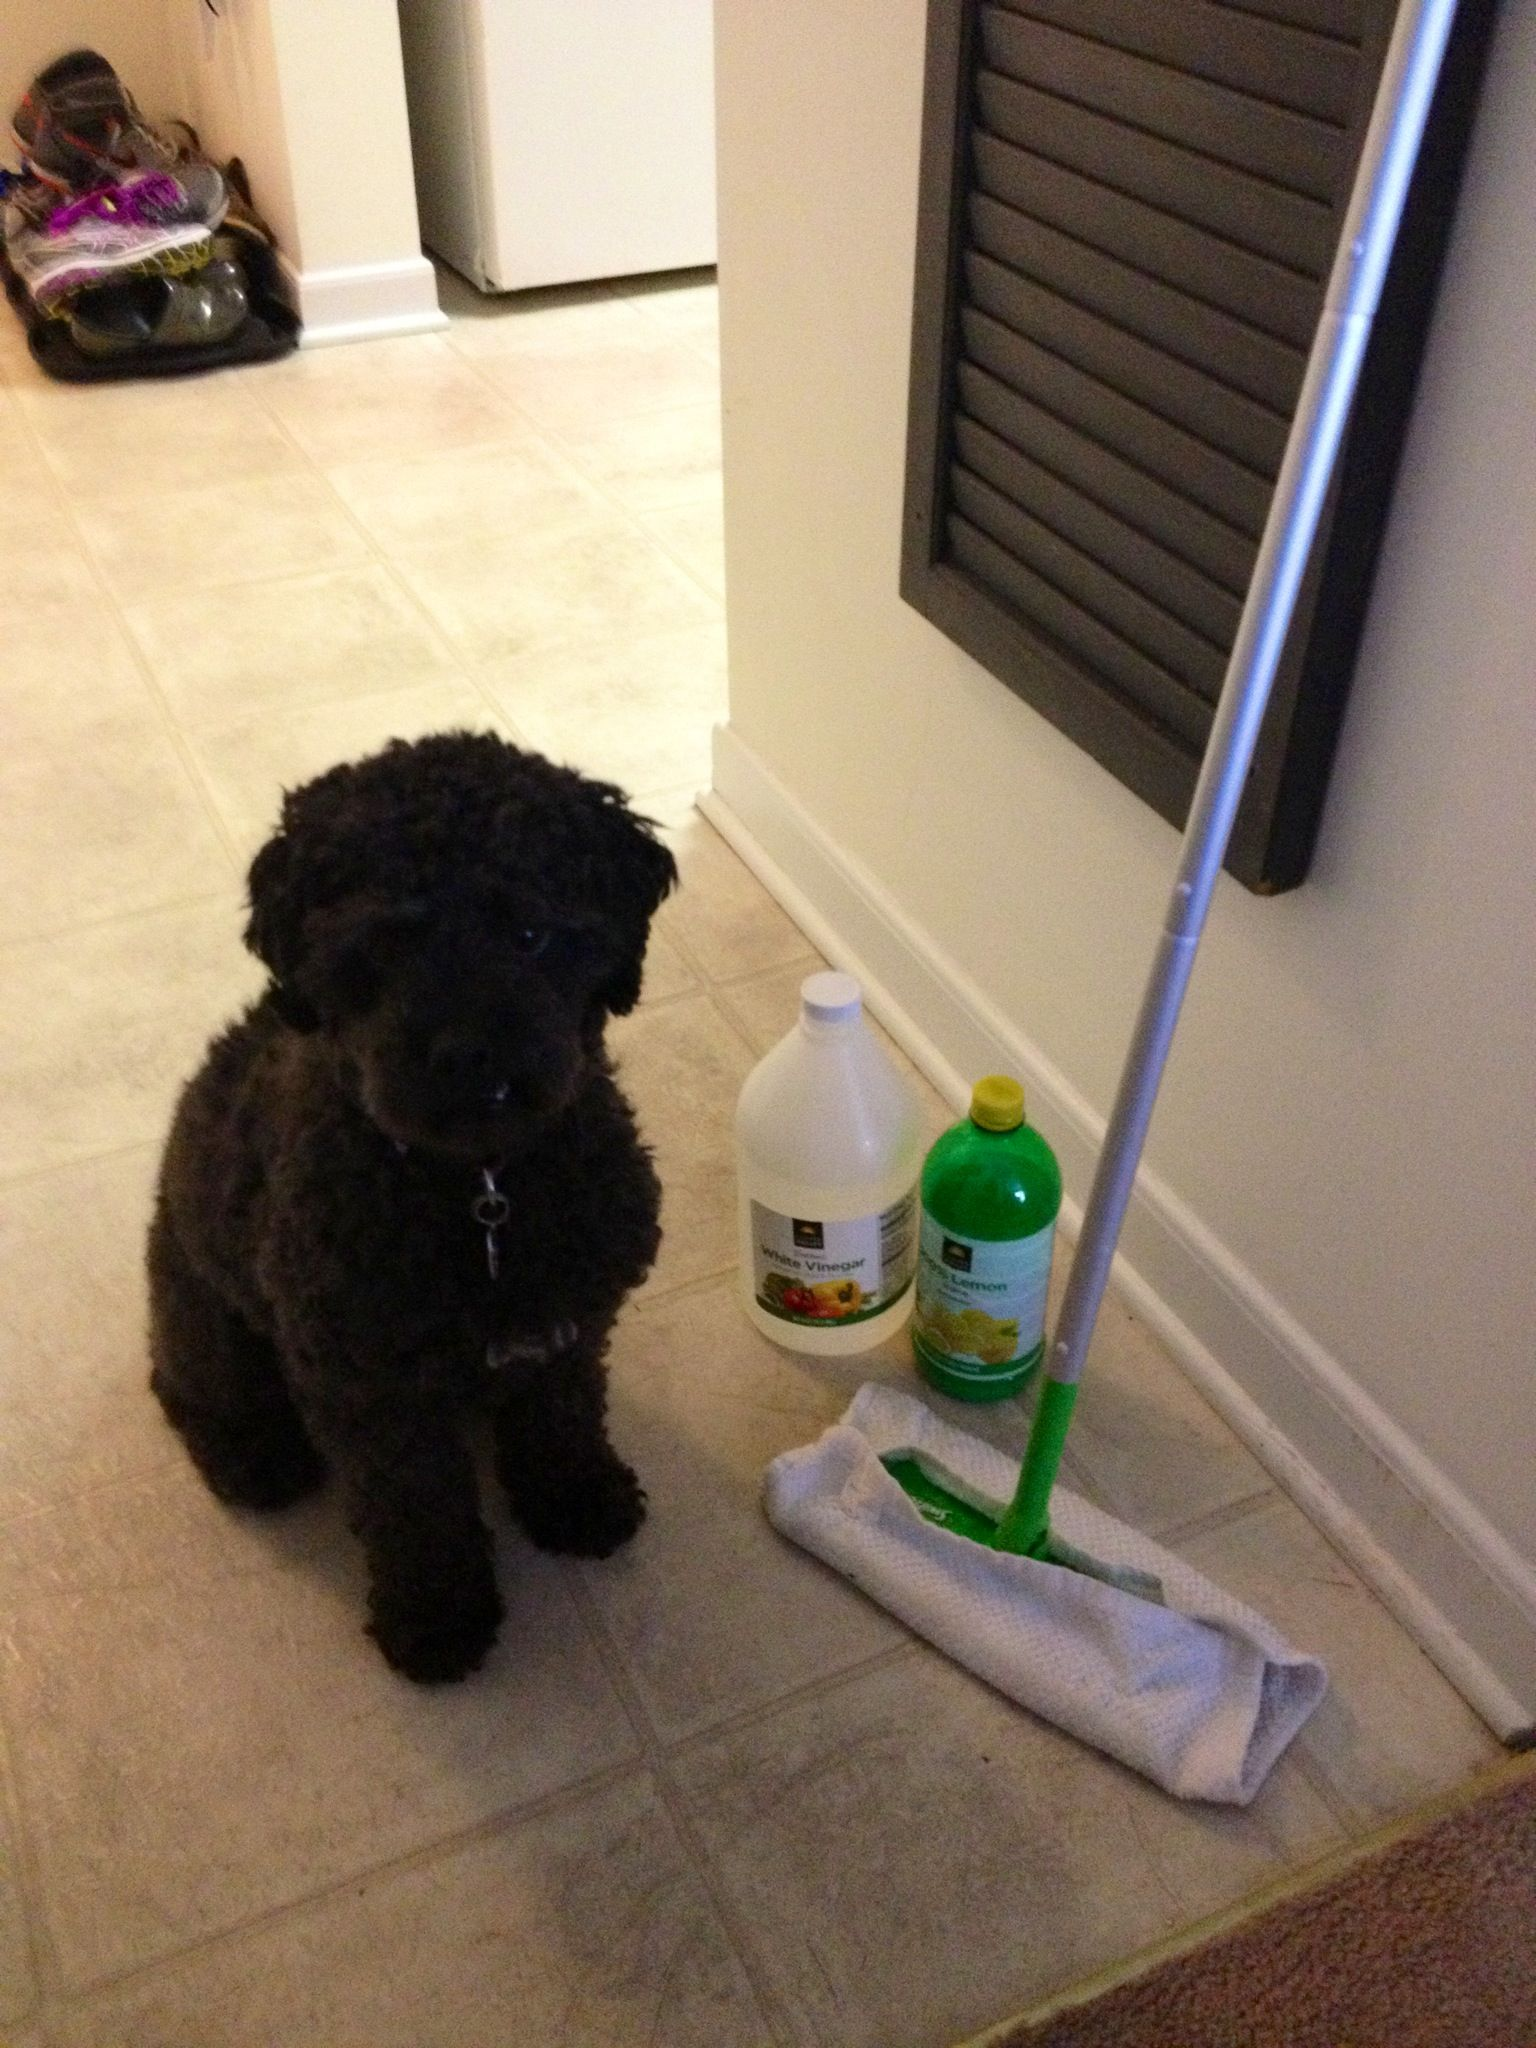 Pet Friendly Non Toxic Floor Cleaner 1 2 White Vinegar Cup Lemon Juice And Sink Full Hot Water I Use The Swifter Mop But With Old Hand Towels So